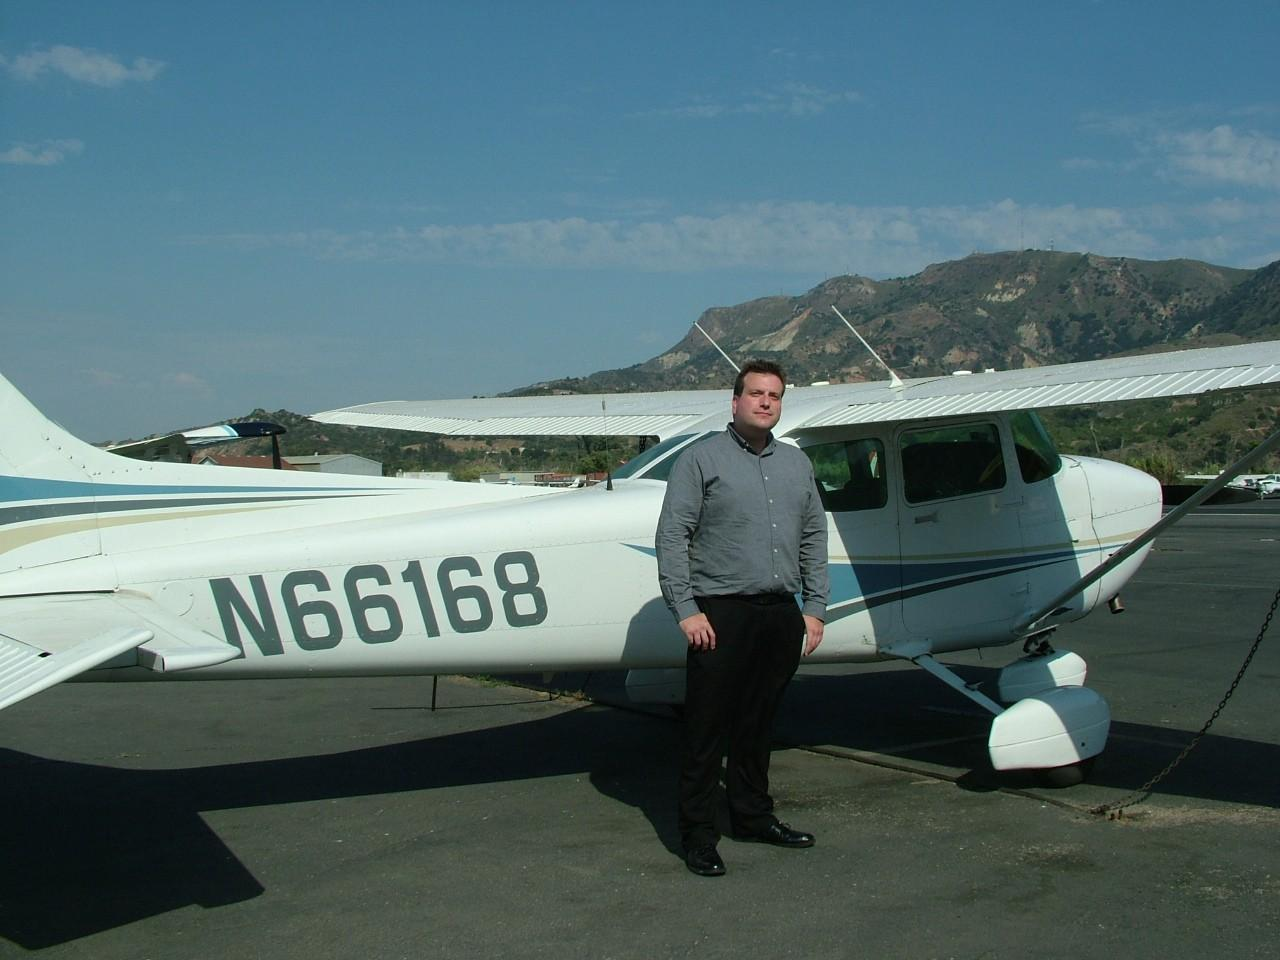 First Solo - Jason Keck